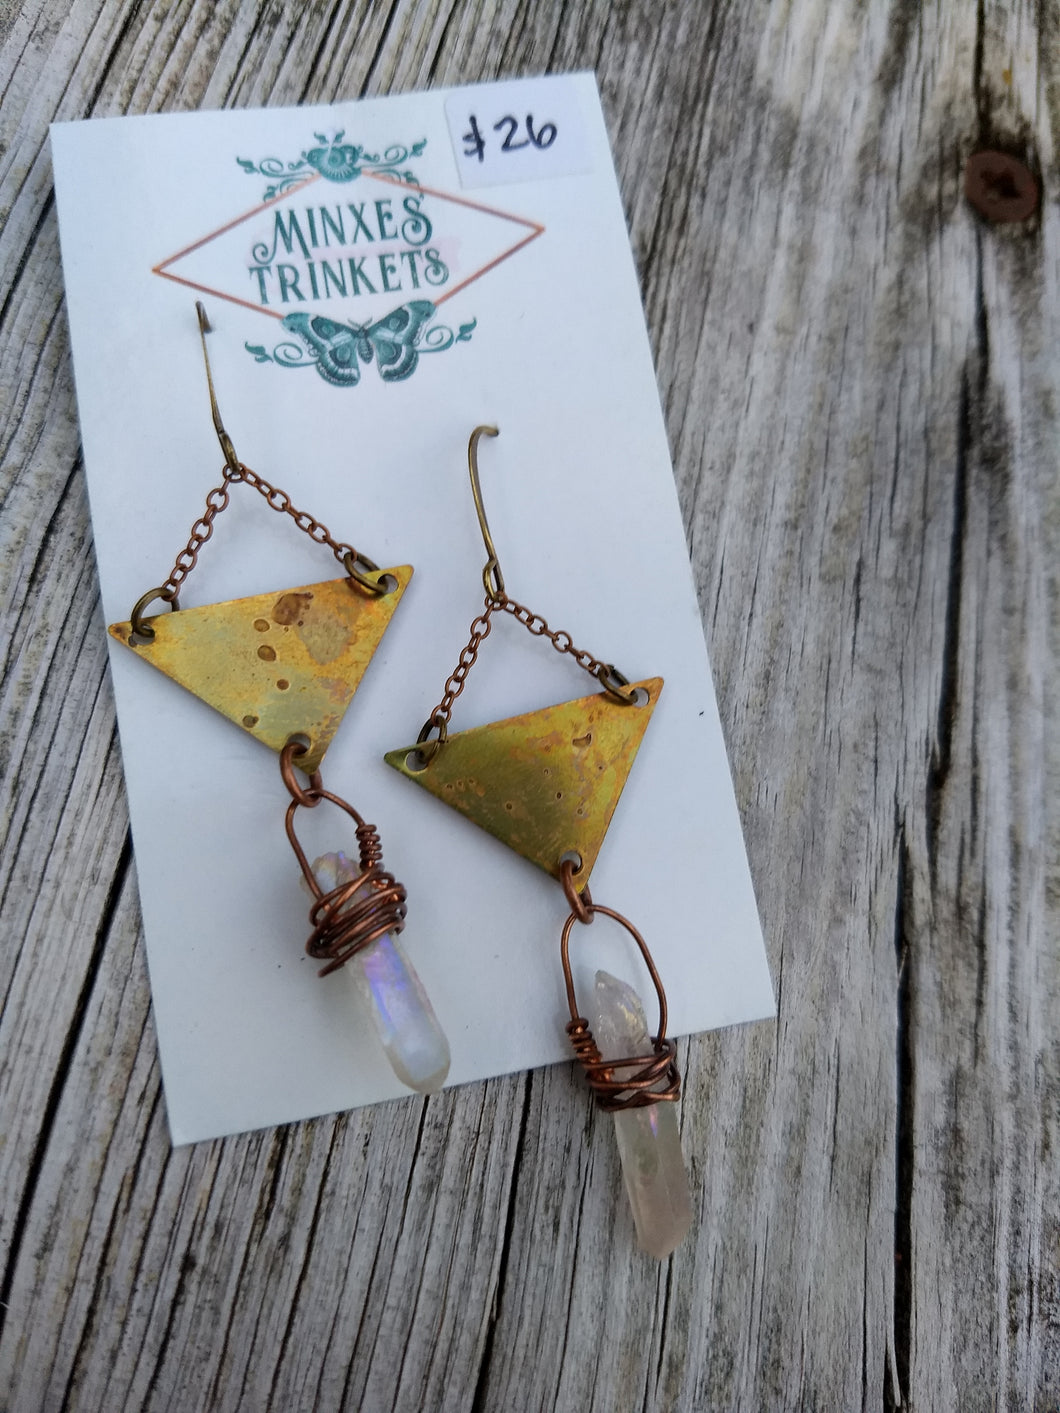 Triangle Aura Quartz Earrings - Minxes' Trinkets